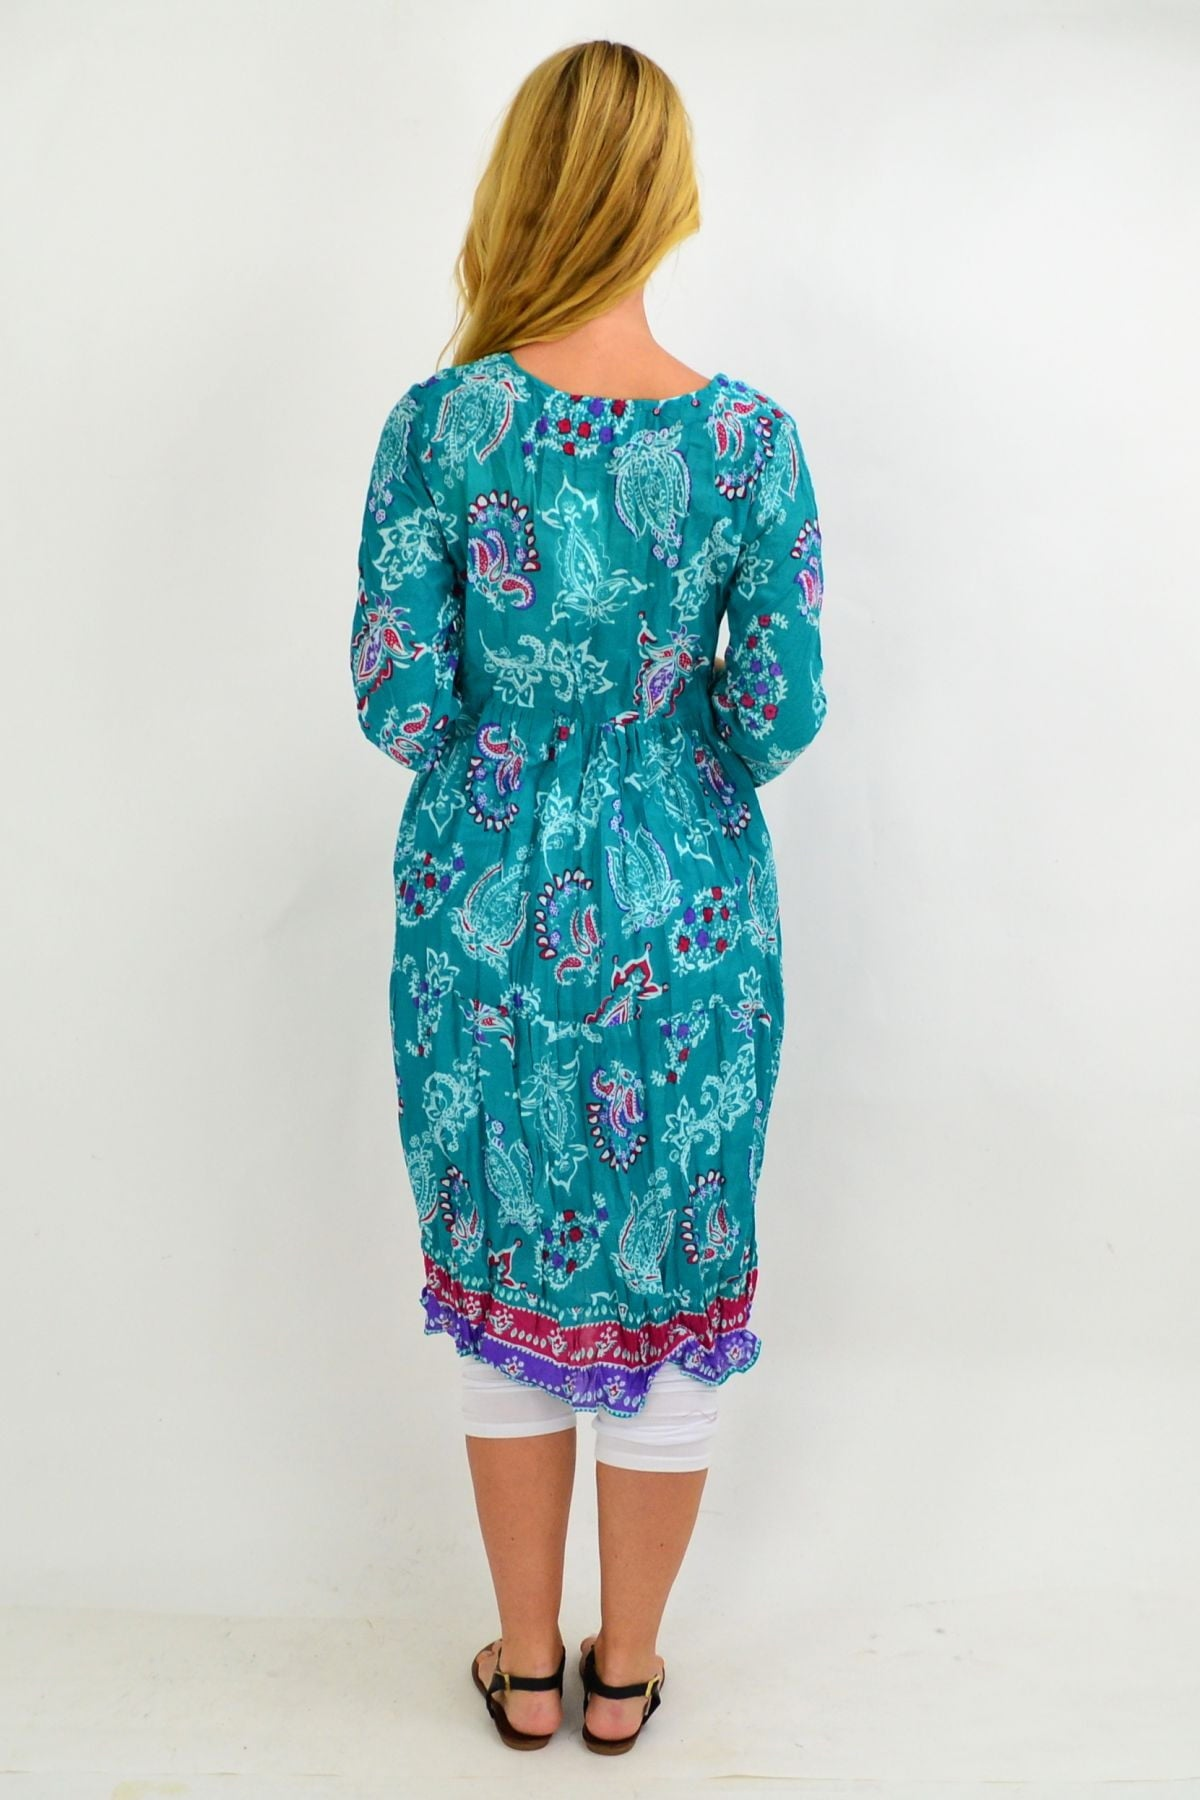 Green Paisley Tie Neck Tunic Dress | I Love Tunics | Tunic Tops | Tunic | Tunic Dresses  | womens clothing online